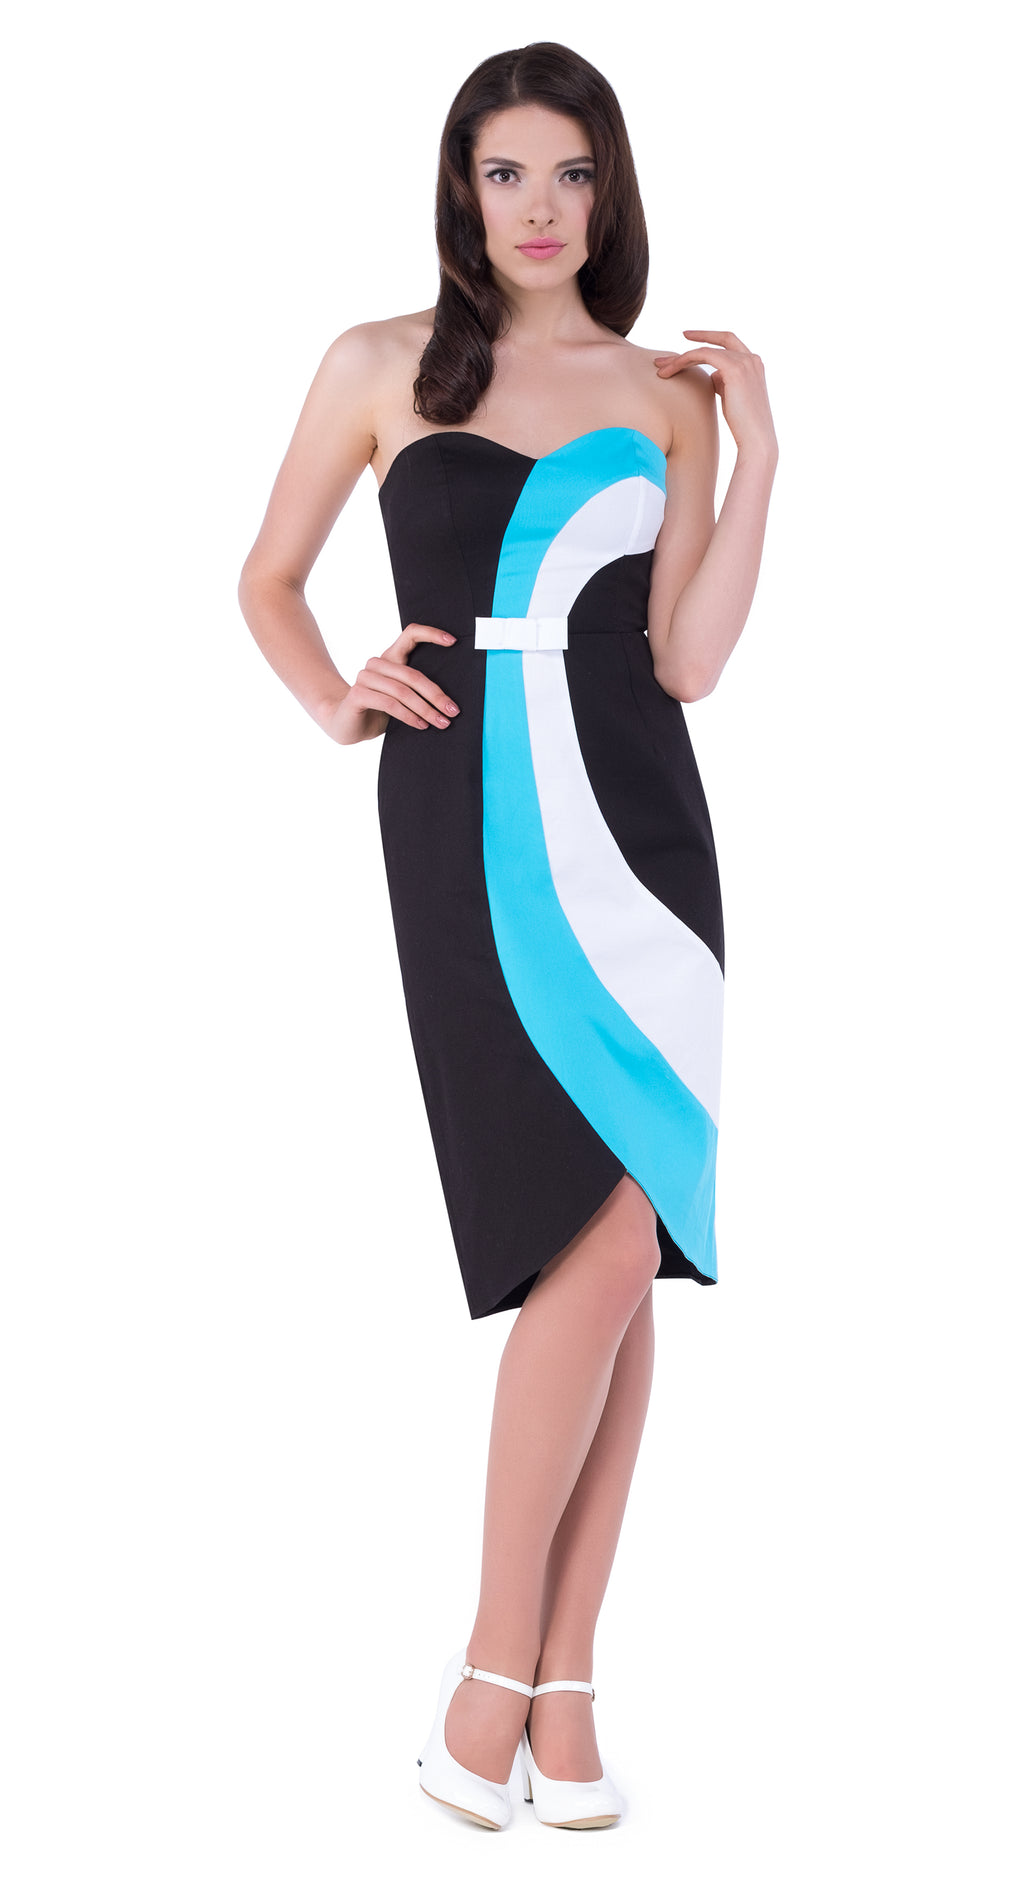 This chic vintage style cocktail dress boasts a striking profile through use of shape and colour. Two waves of colour navigate the curves of the body.  In addition to detail within the cut, a small bow on the bodice adds a cute finish. Made of Italian cotton. A timeless style throughout seasons for as and when the moment to dress up strikes.